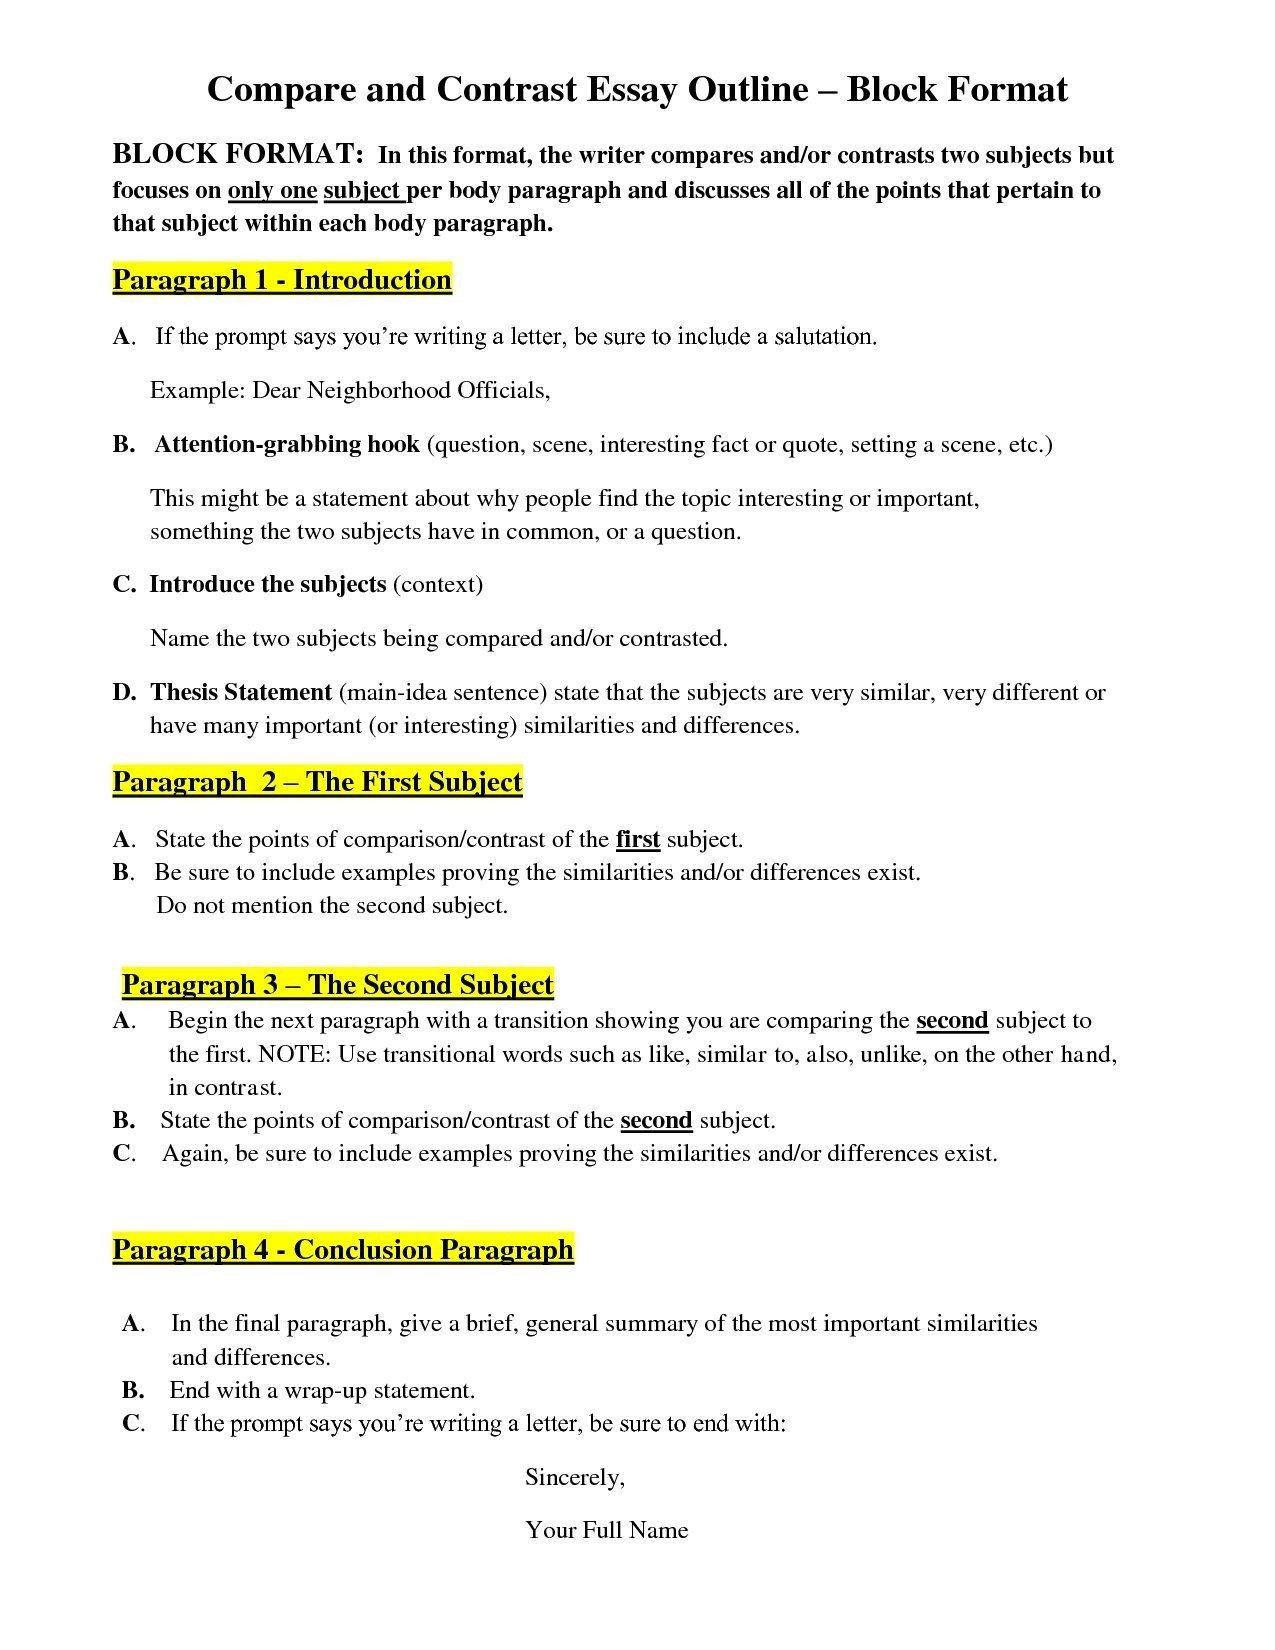 014 Essay Examplempare Andntrastmparison Best Examples Of Scenario In 6th Grade An Goo 3rd Food 5th Middle School Block Format Pdf High 4th Vs Striking Compare And Contrast Example Comparison Free For Full